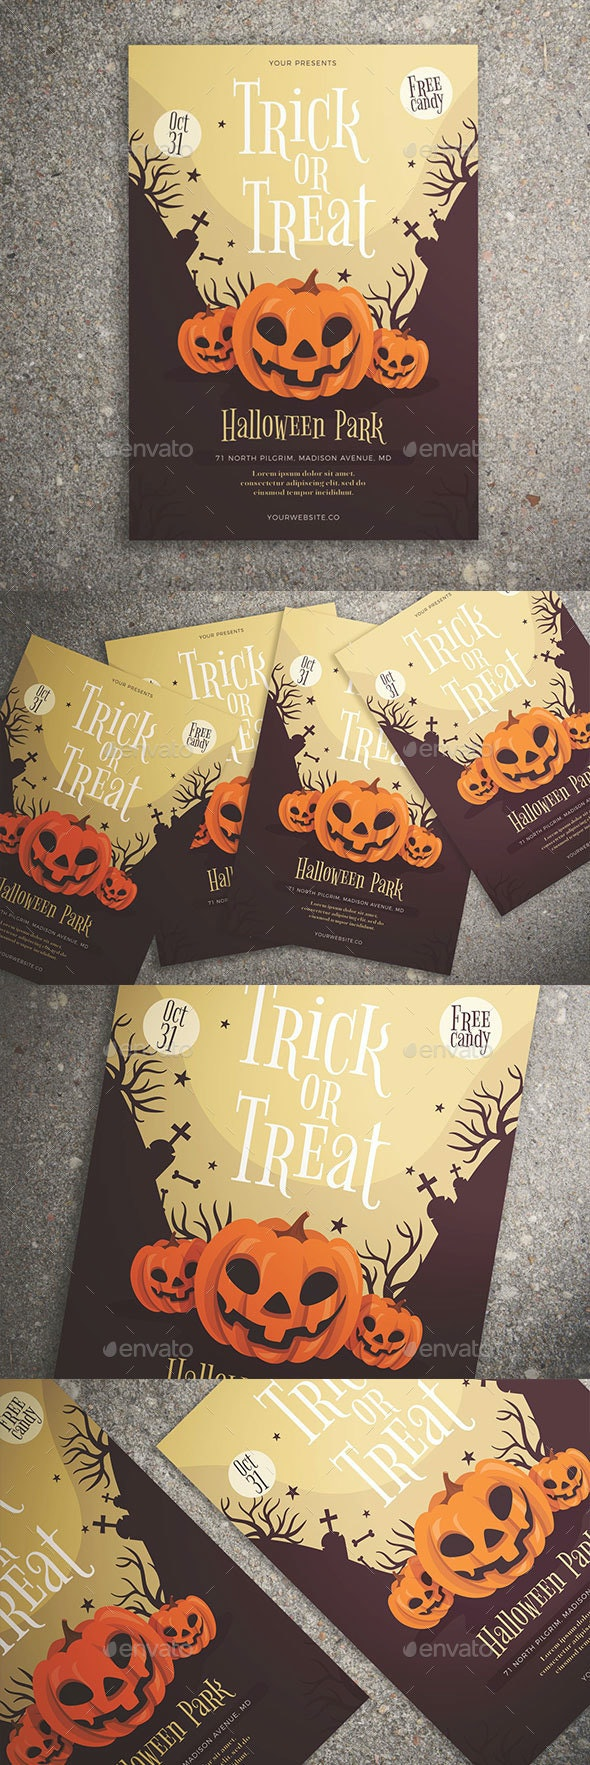 Trick or Treat Halloween Flyer - Events Flyers